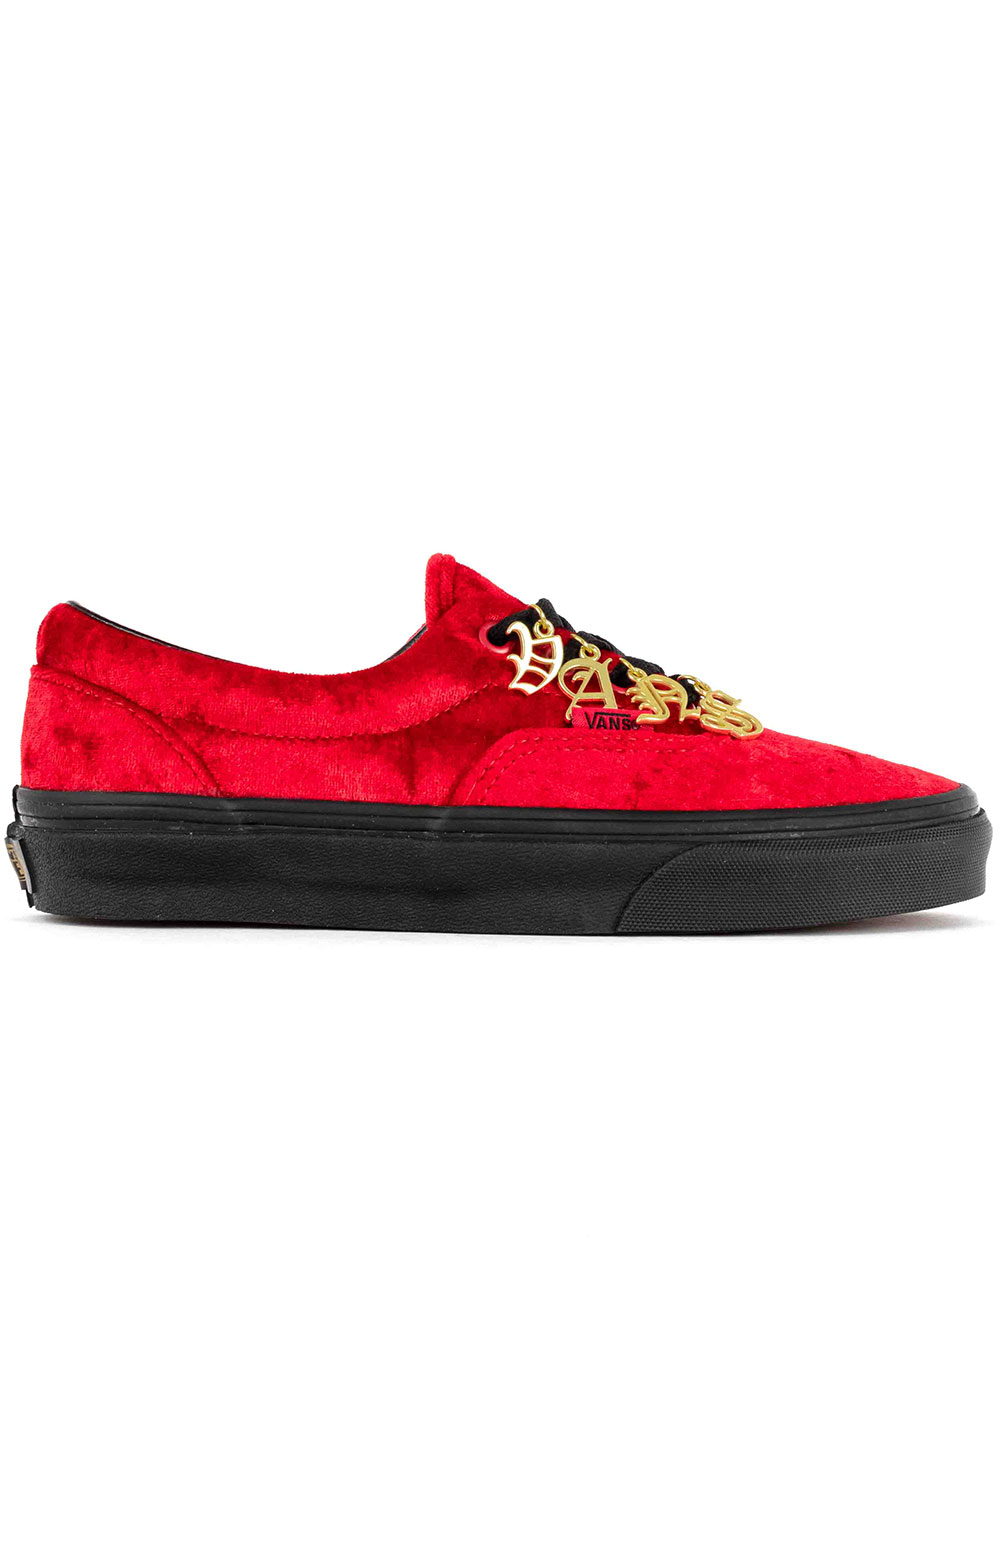 (BV4V9G) Vans ID Era Shoe - Red